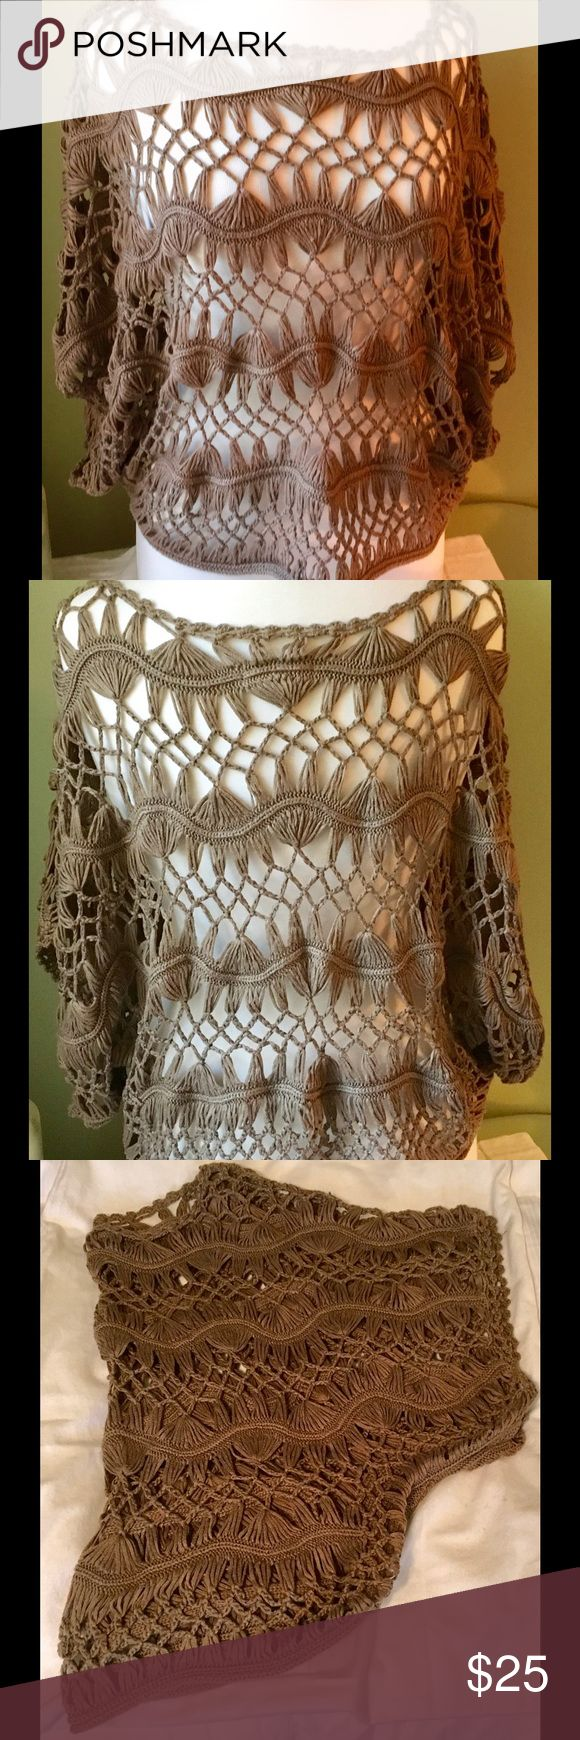 Body Central Top Body Central Crochet Topper, size S/M Very pretty brown/taupe color, goes with everything.  EUC Body Central Sweaters Shrugs & Ponchos